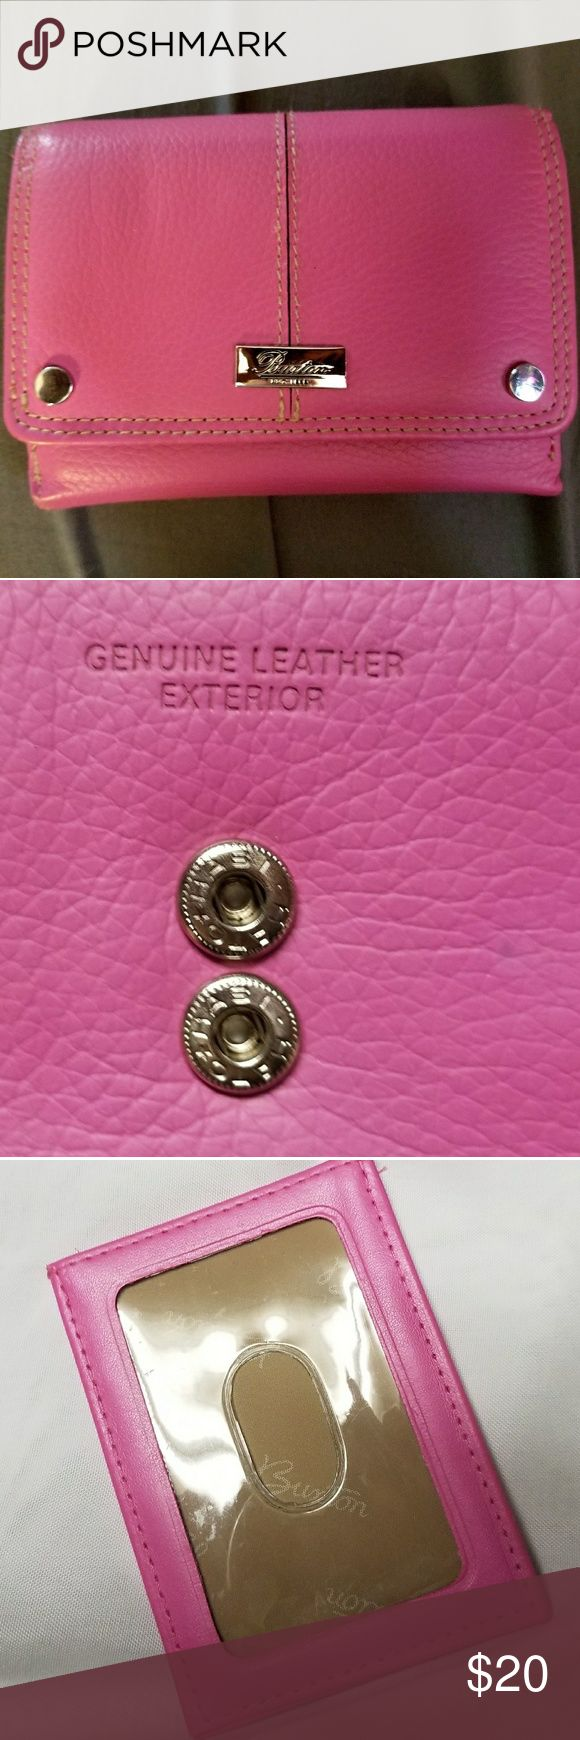 Genuine Leather Buxton Wallet Buxton dark pink genuine leather wallet. Be stylish & functional with this beautiful, timeless wallet. Two coin purses. Removable ID holder w/ 3 card slots. 21 card holders. Buxton Bags Wallets